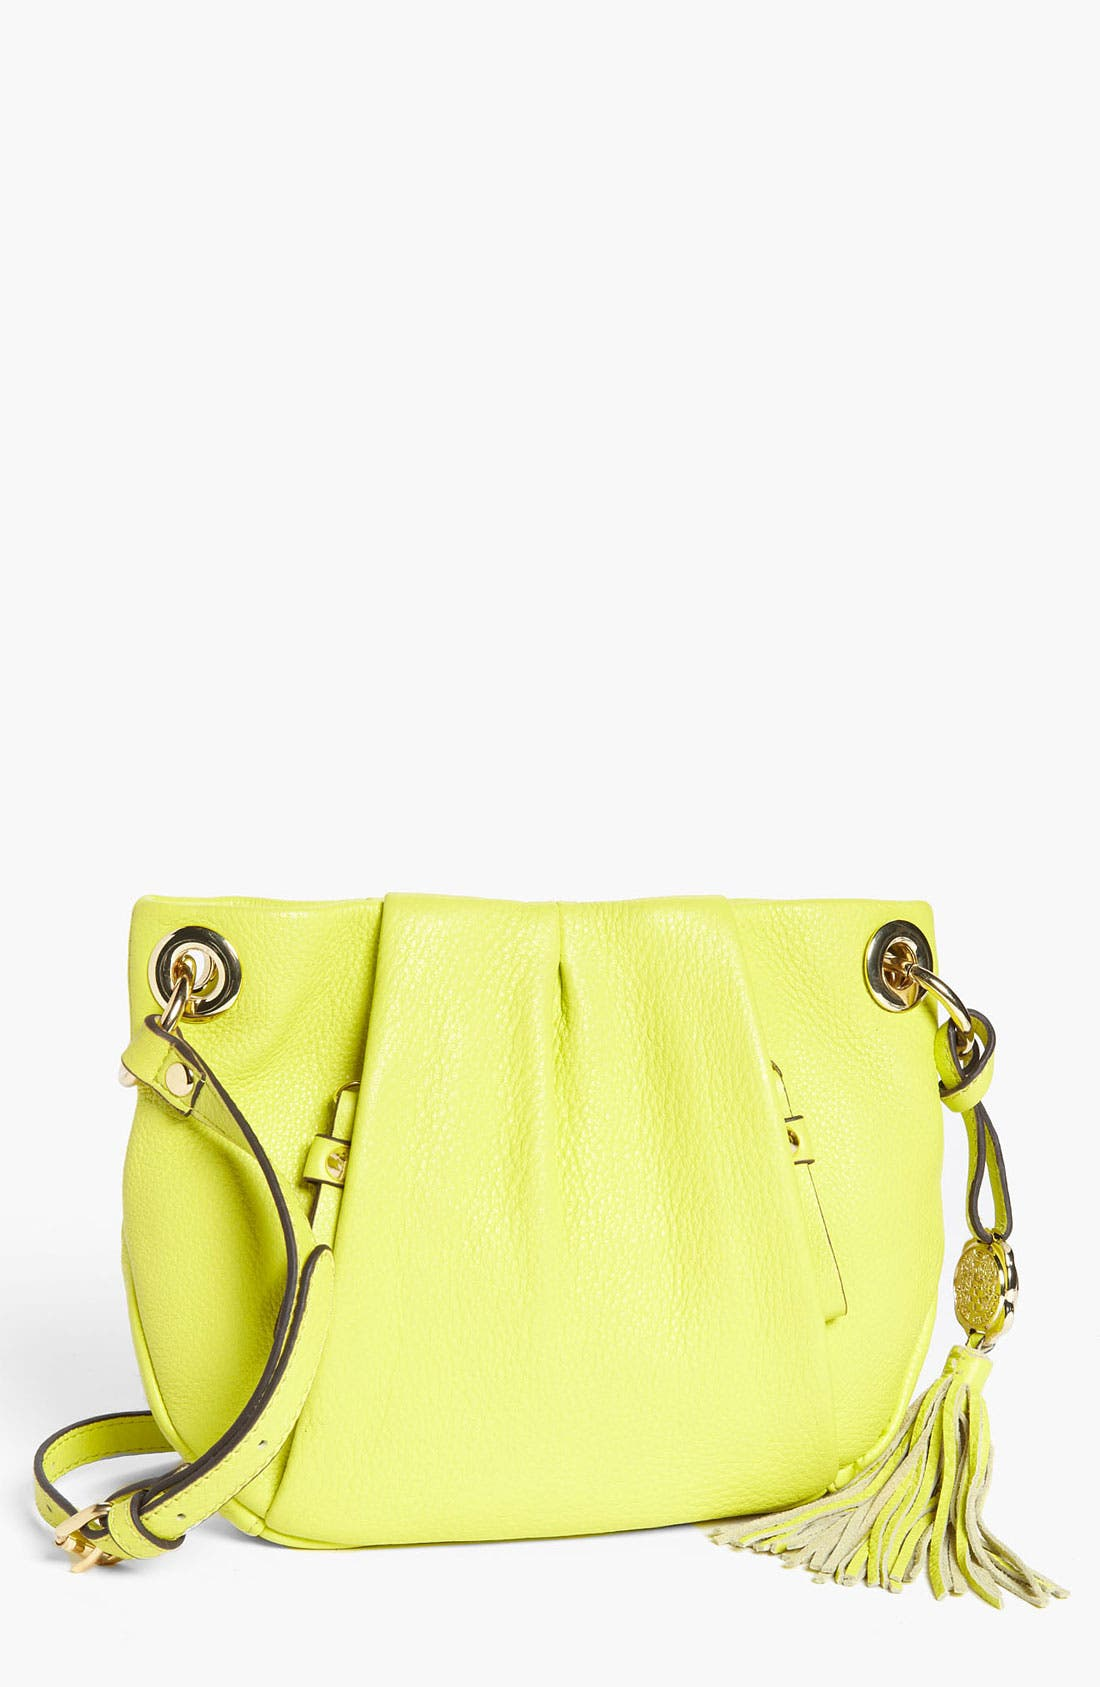 Alternate Image 1 Selected - Vince Camuto 'Cristina' Crossbody Bag